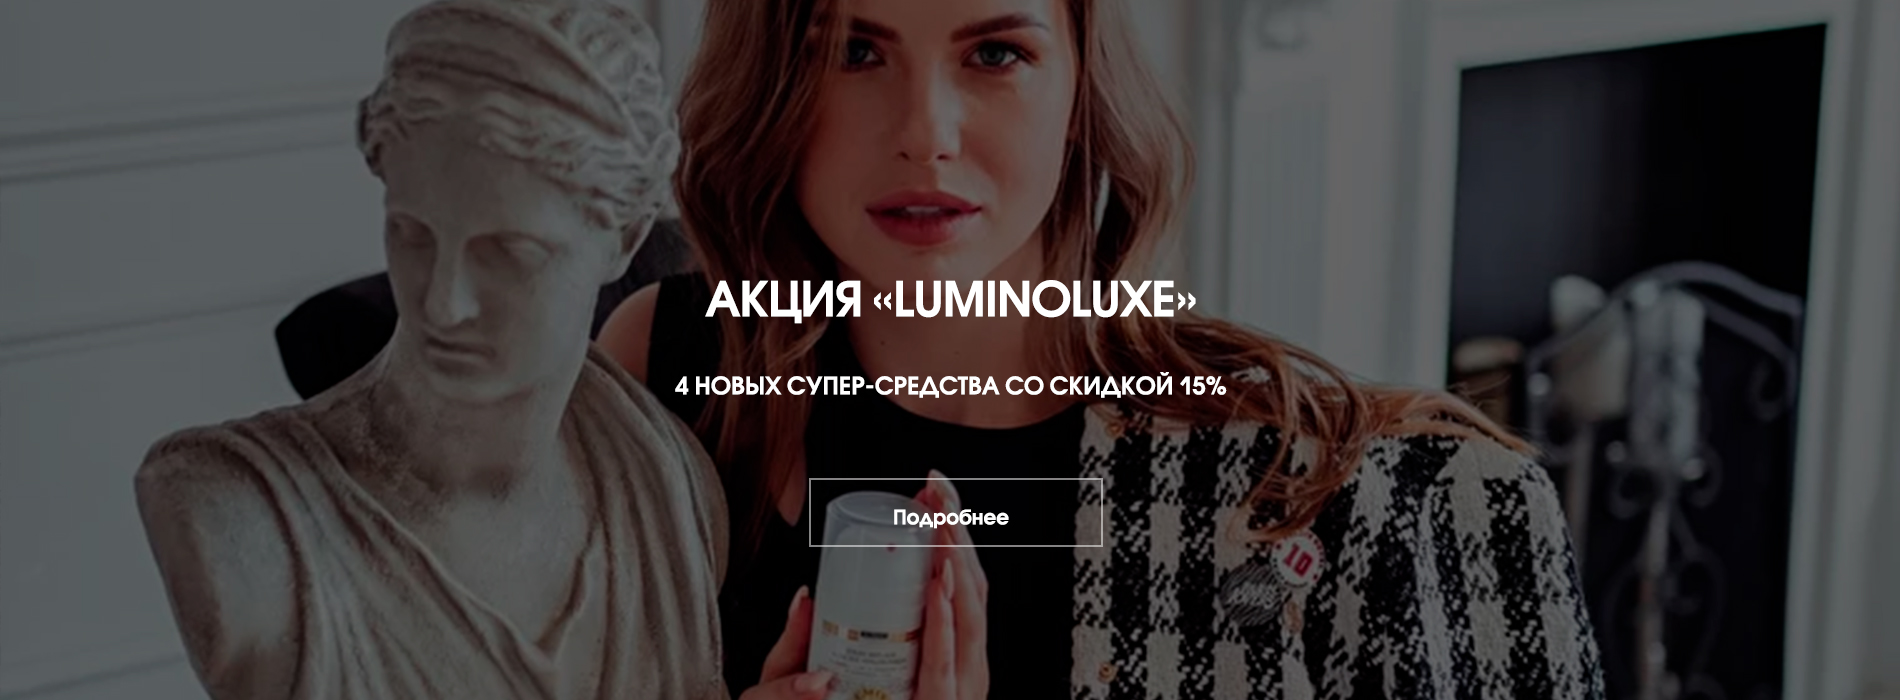 АКЦИЯ «LUMINOLUXE»